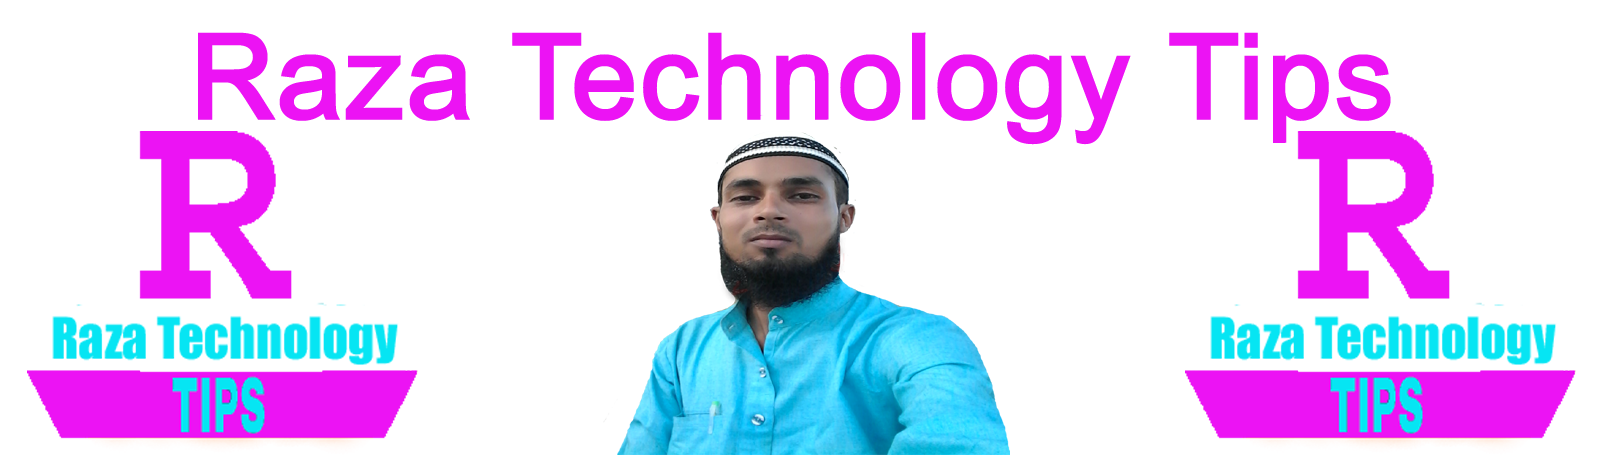 Raza Technology Tips